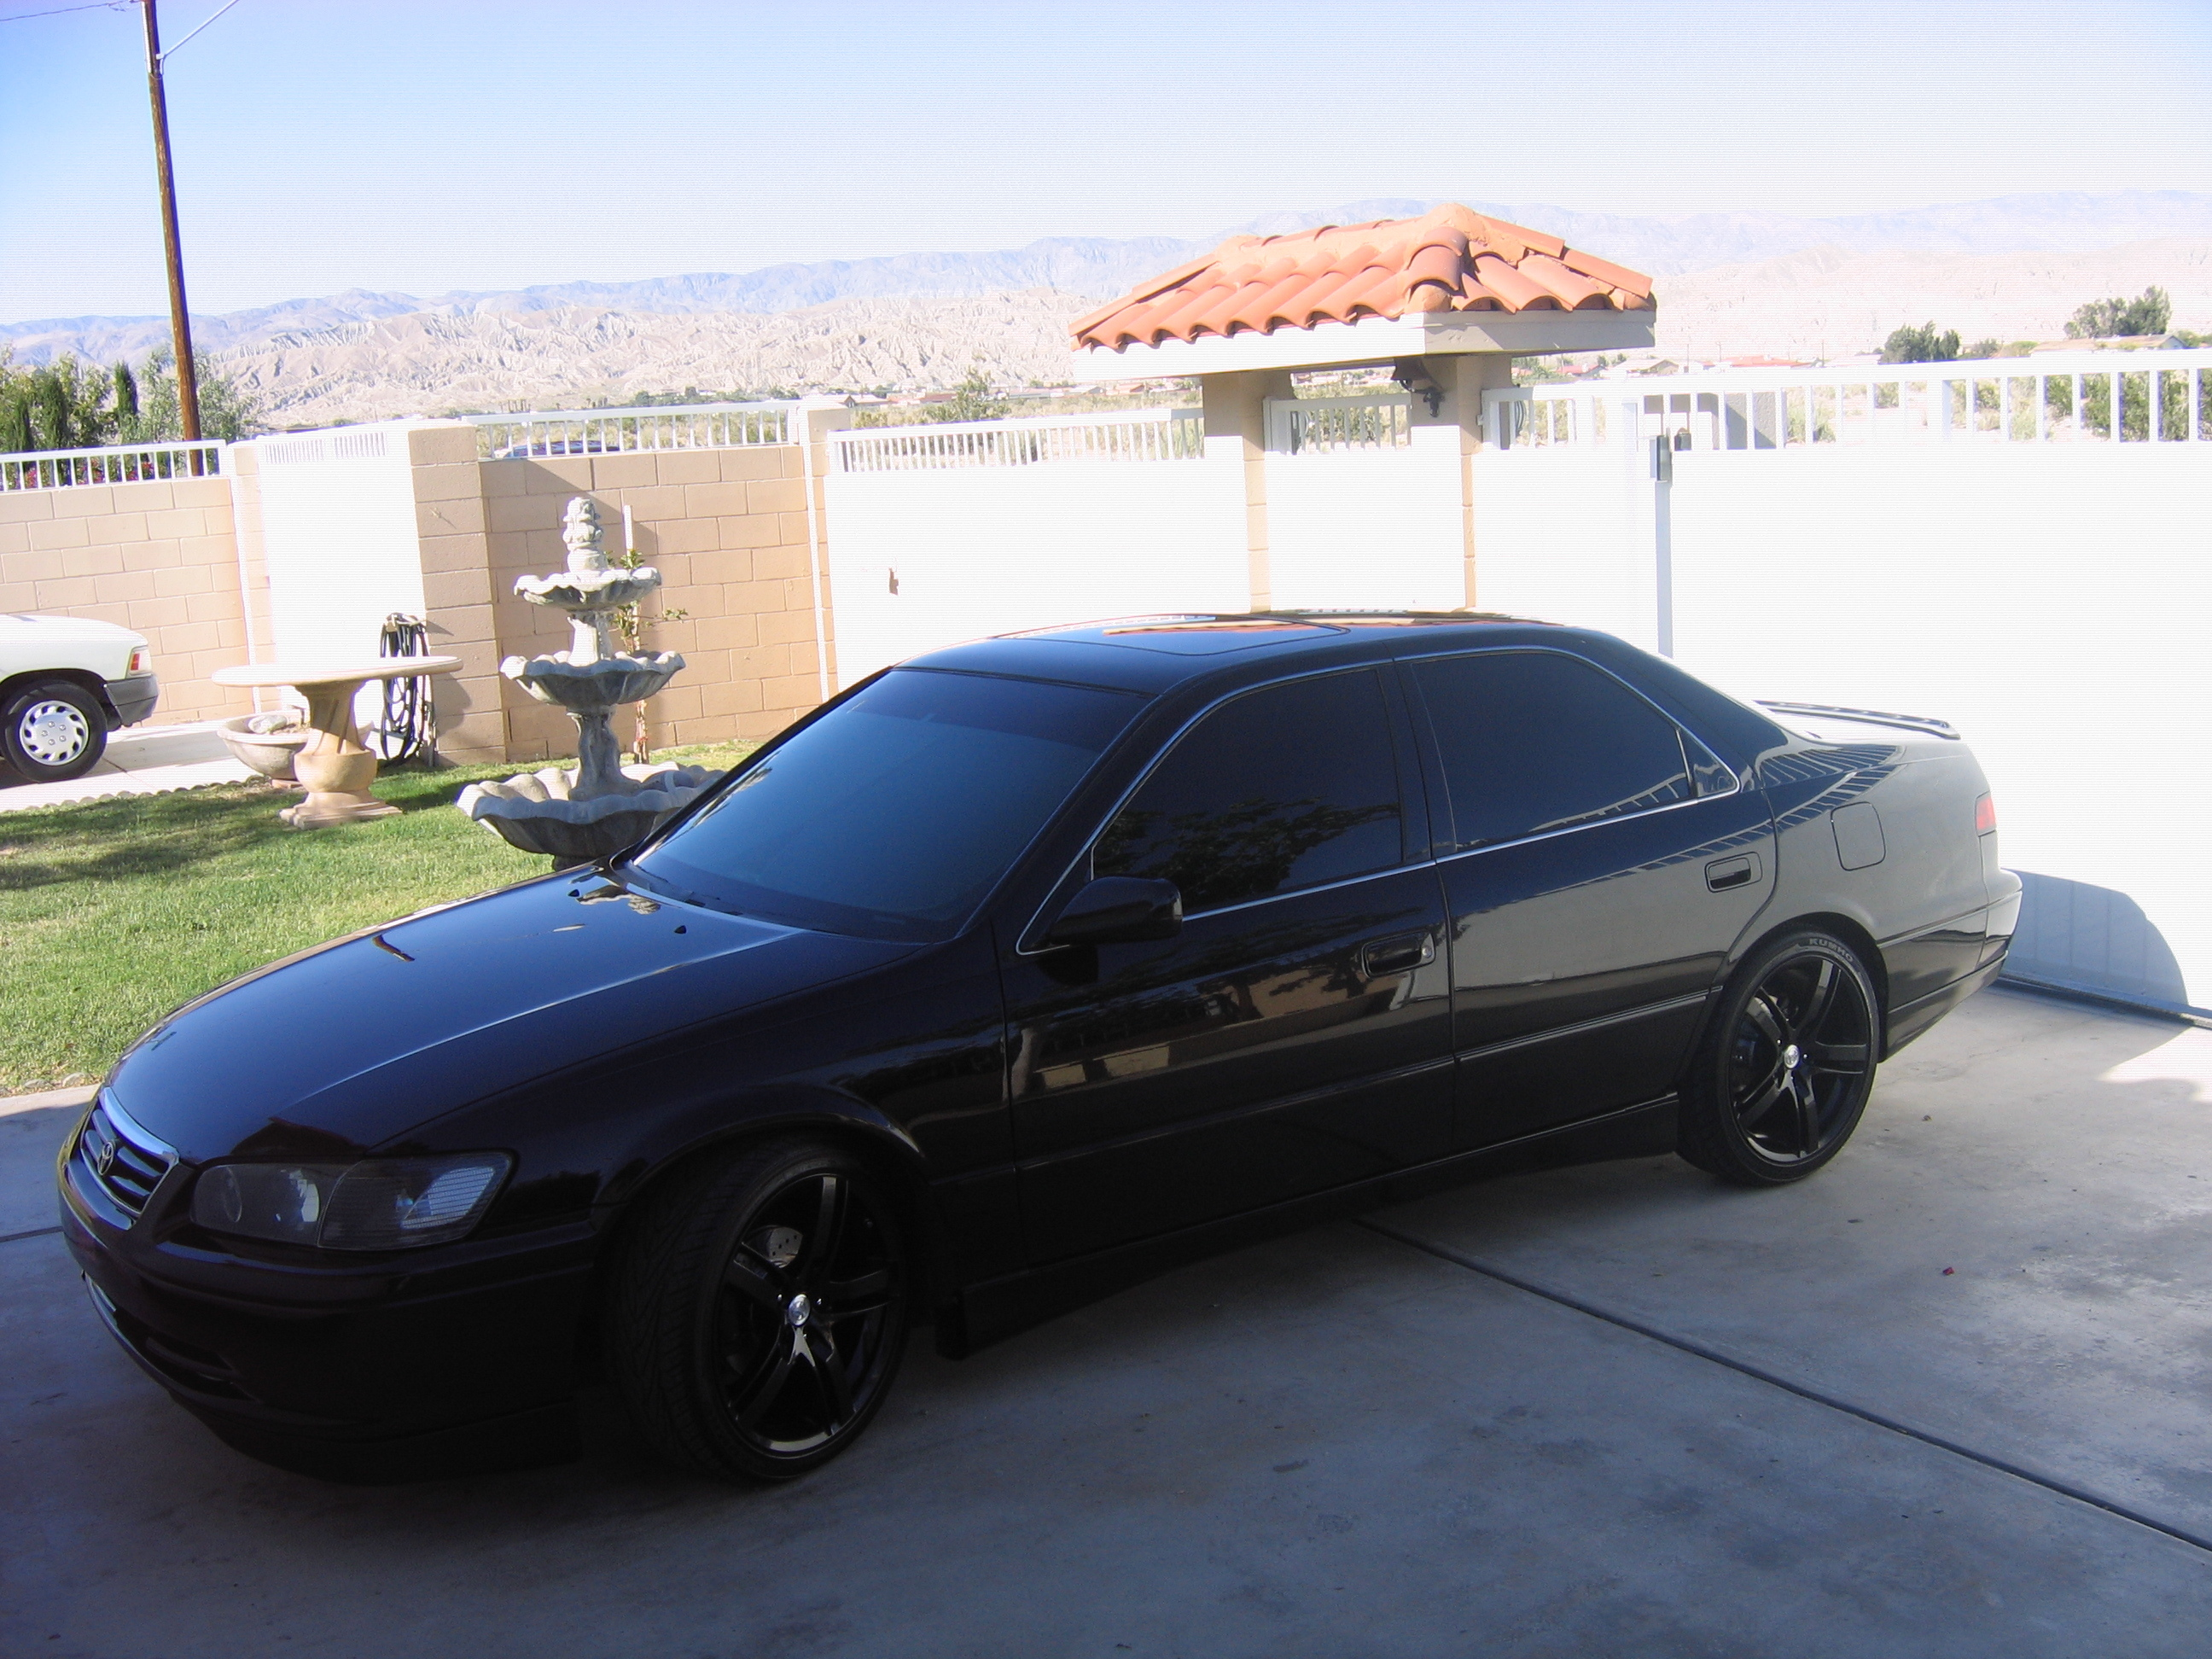 Blacked Out Camry >> White Camry Murdered Out Pictures to Pin on Pinterest - PinsDaddy